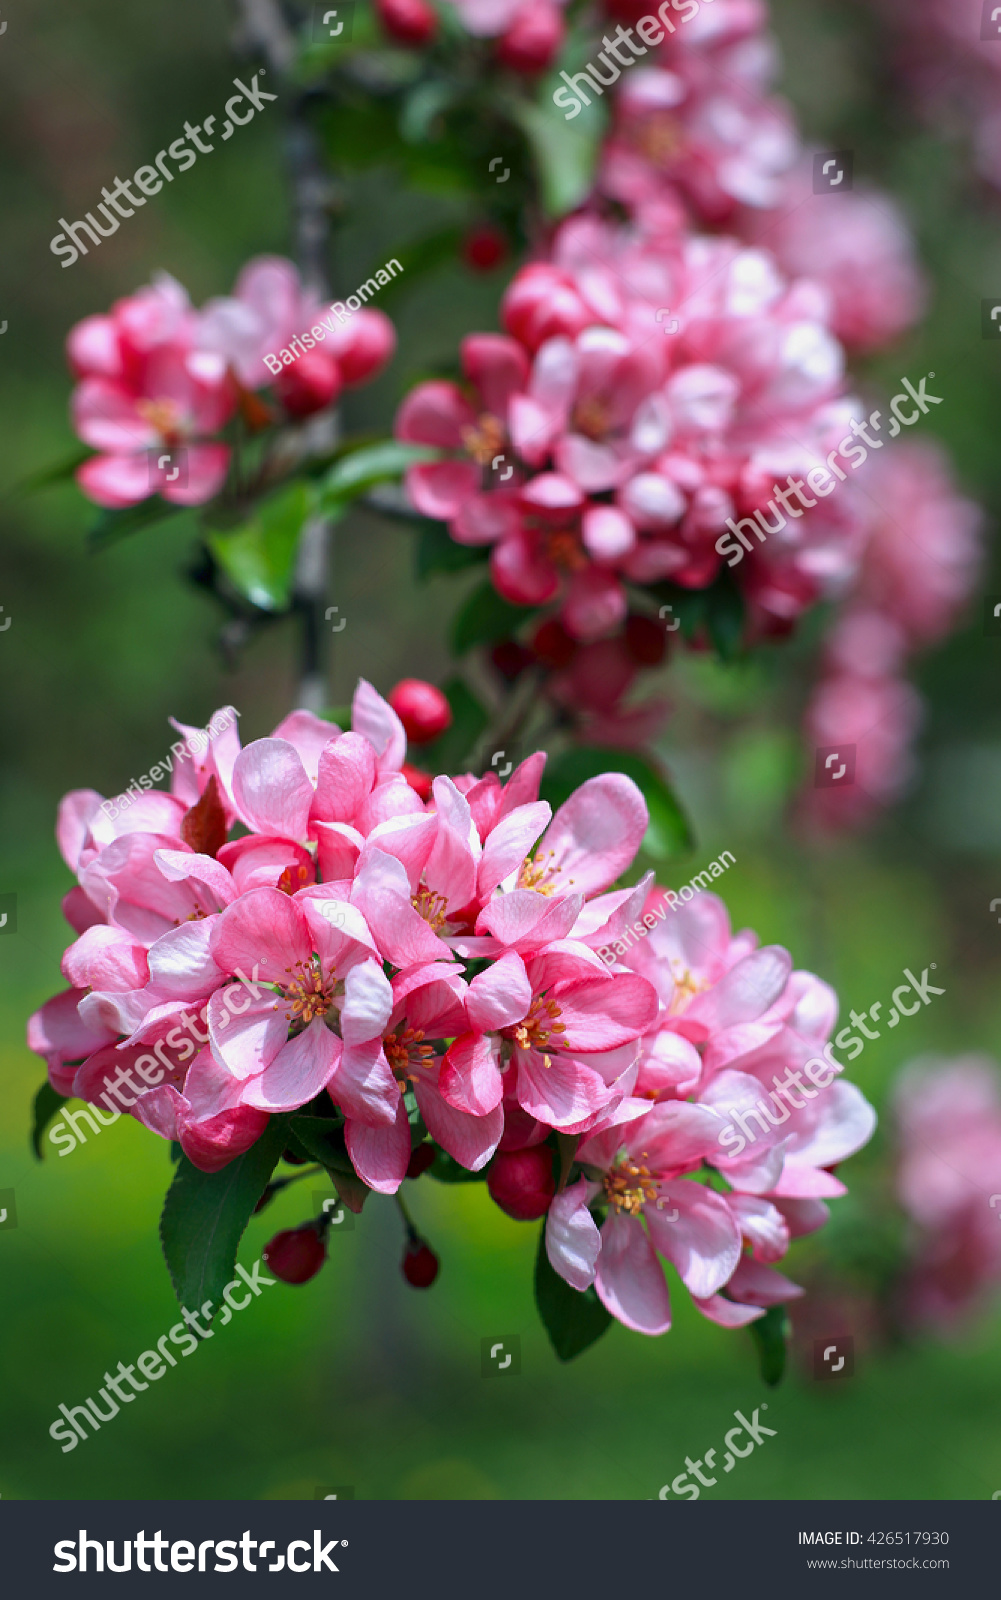 Spring flowers spring background spring background stock photo spring flowers spring background spring background with bokeh apple tree in blossom mightylinksfo